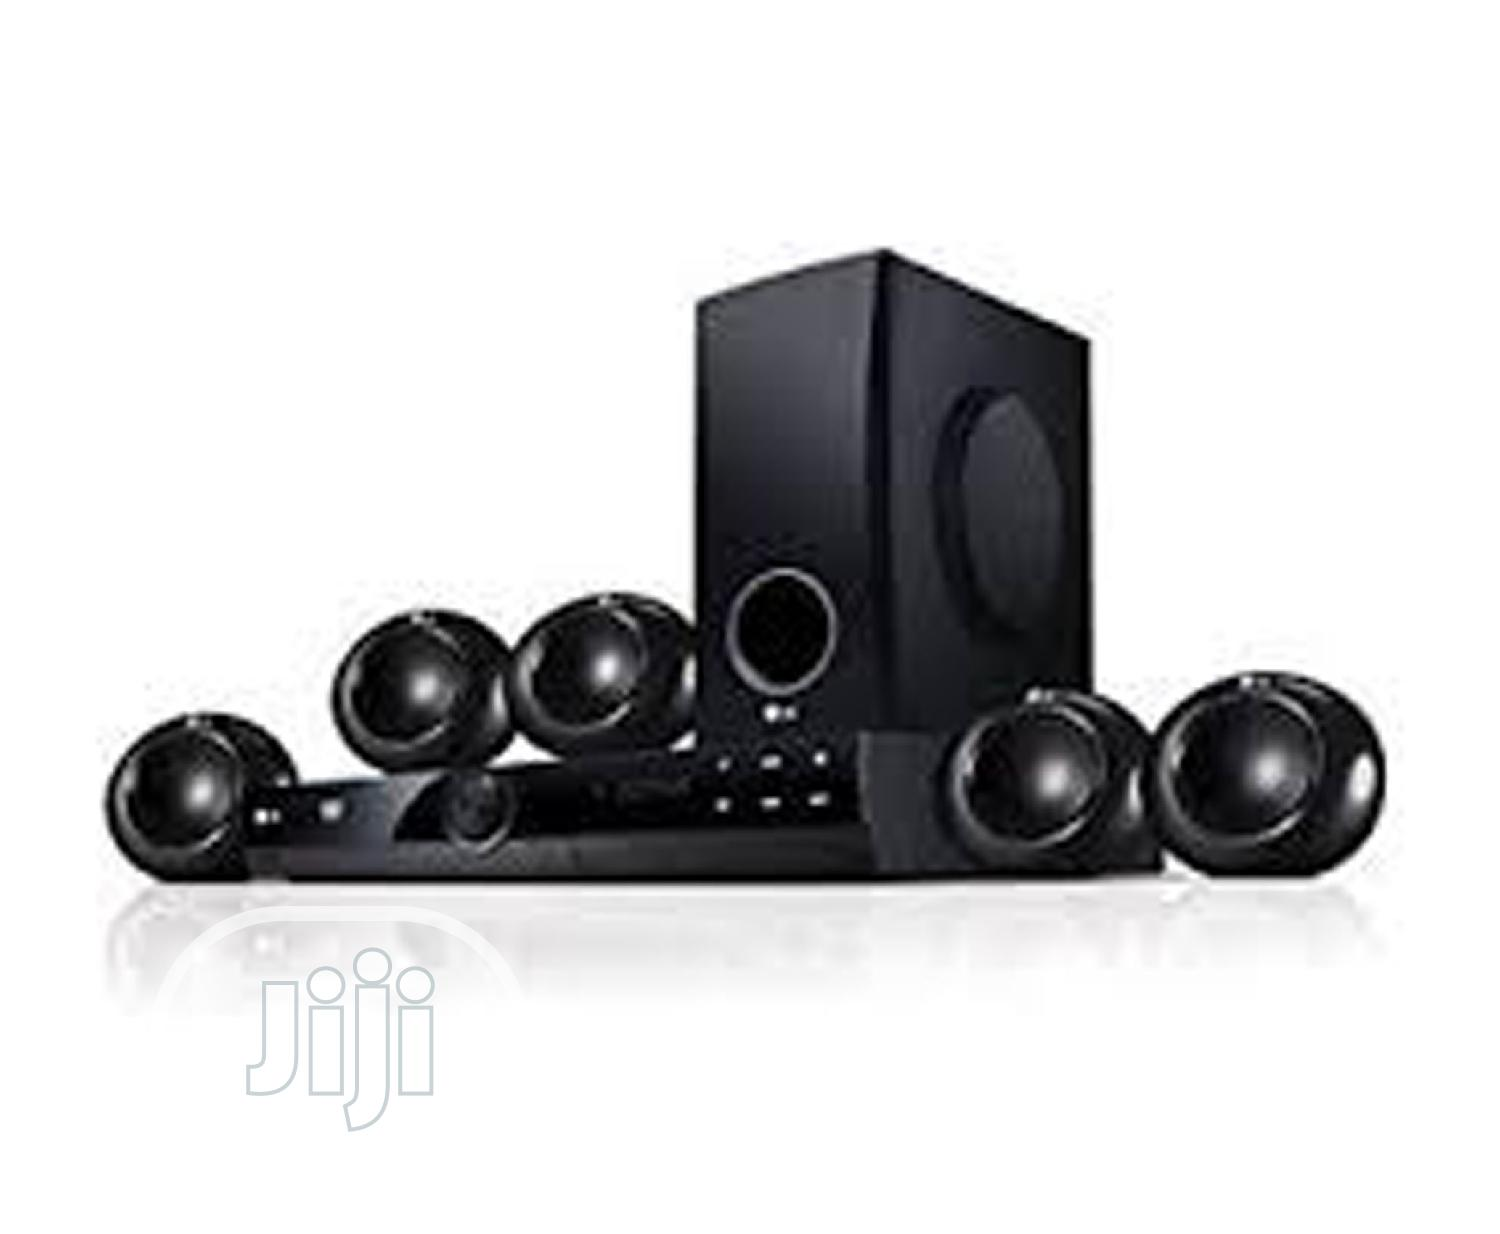 300W LG Home Theater